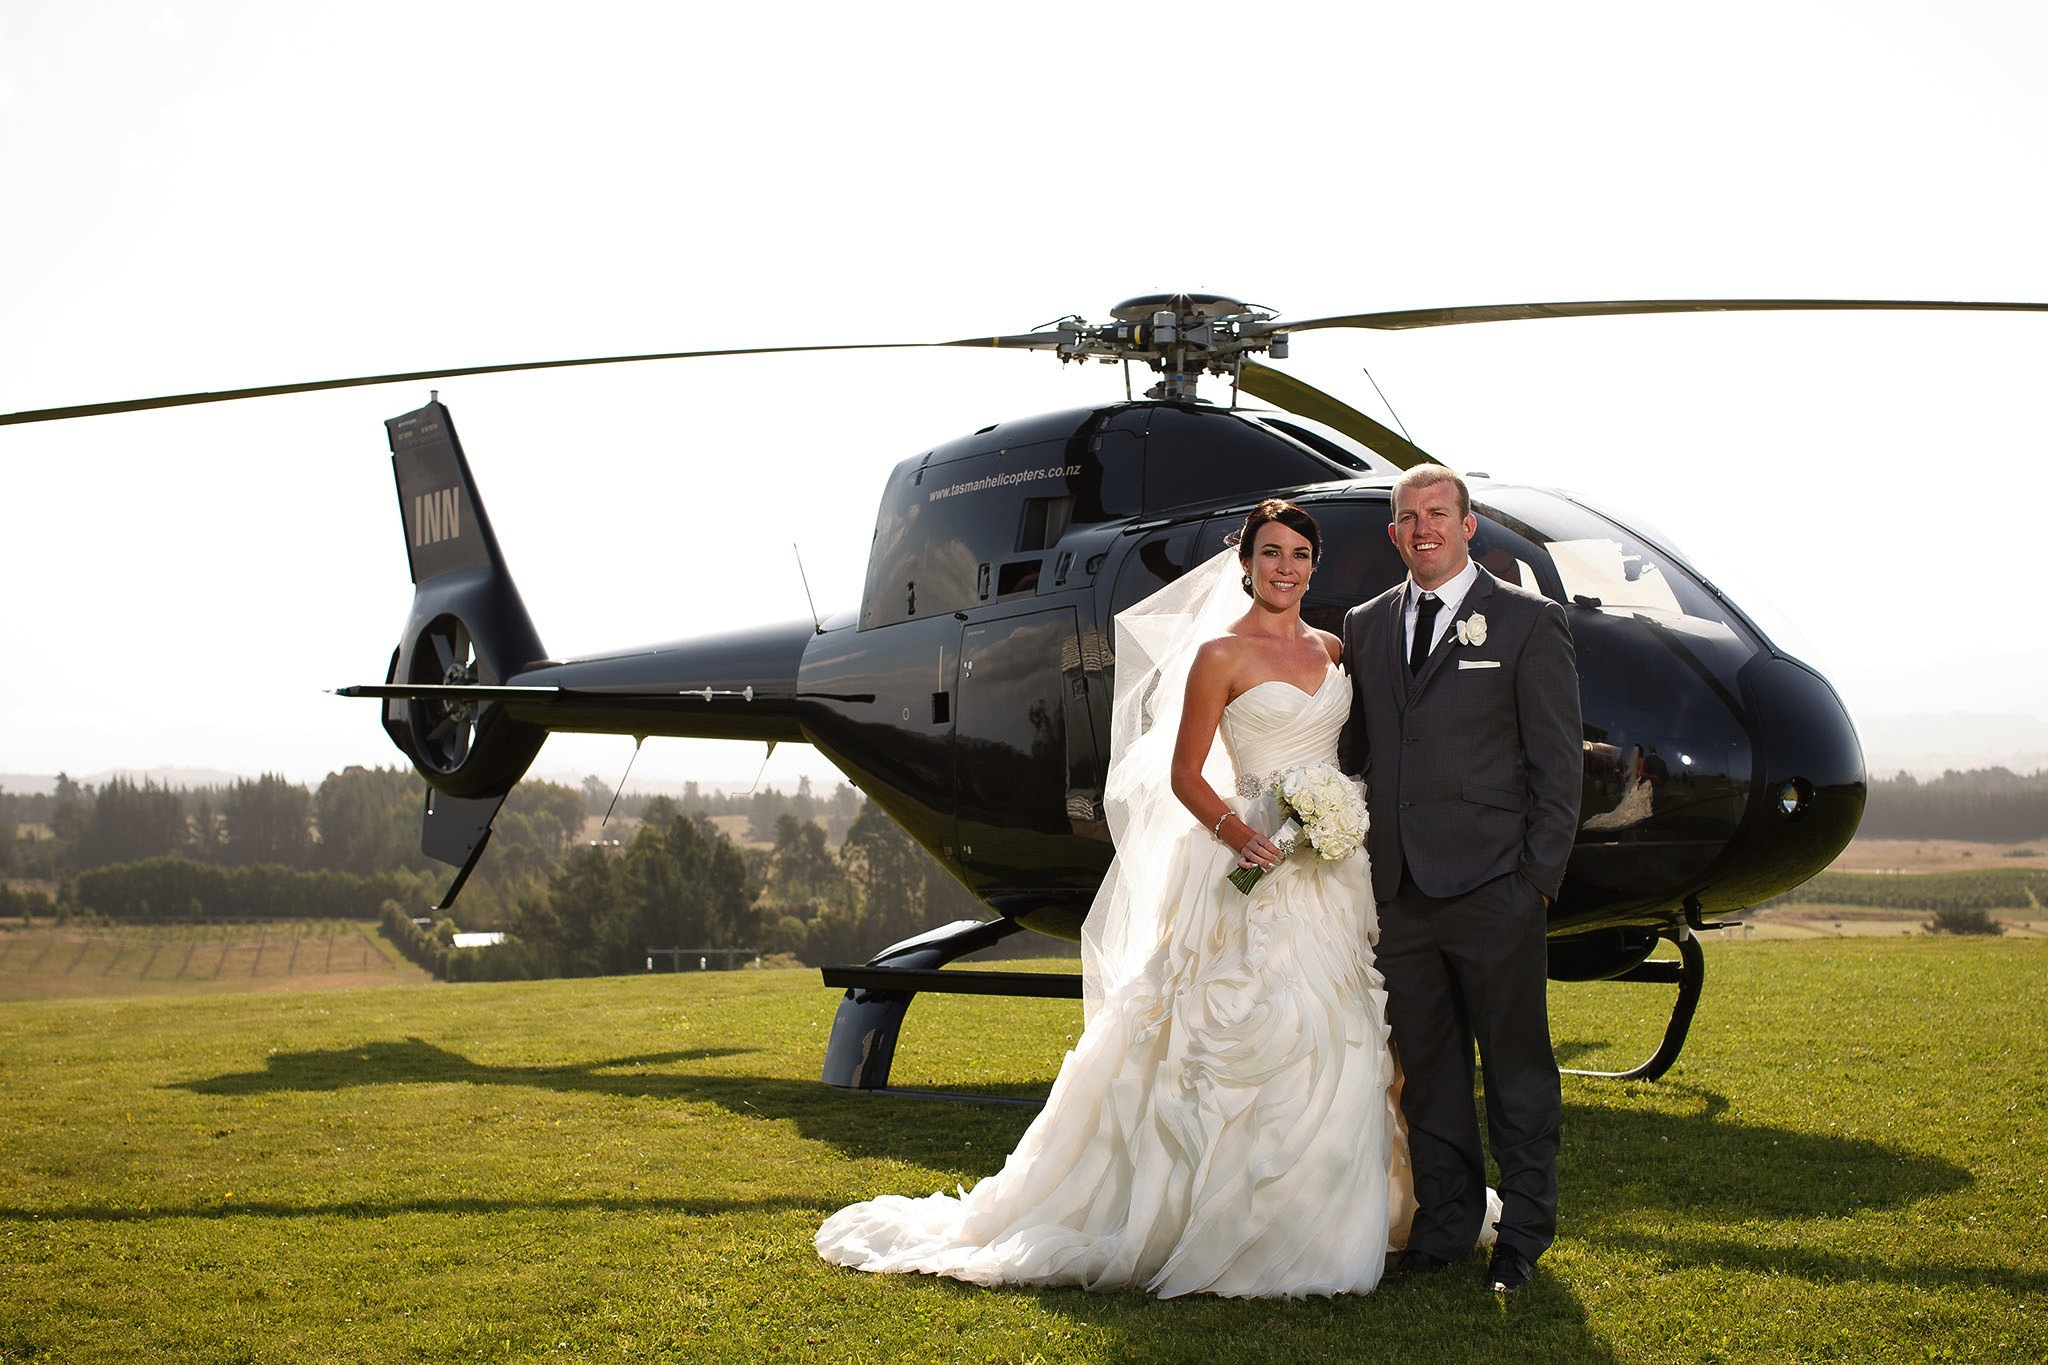 Helicopters for weddings & proposals